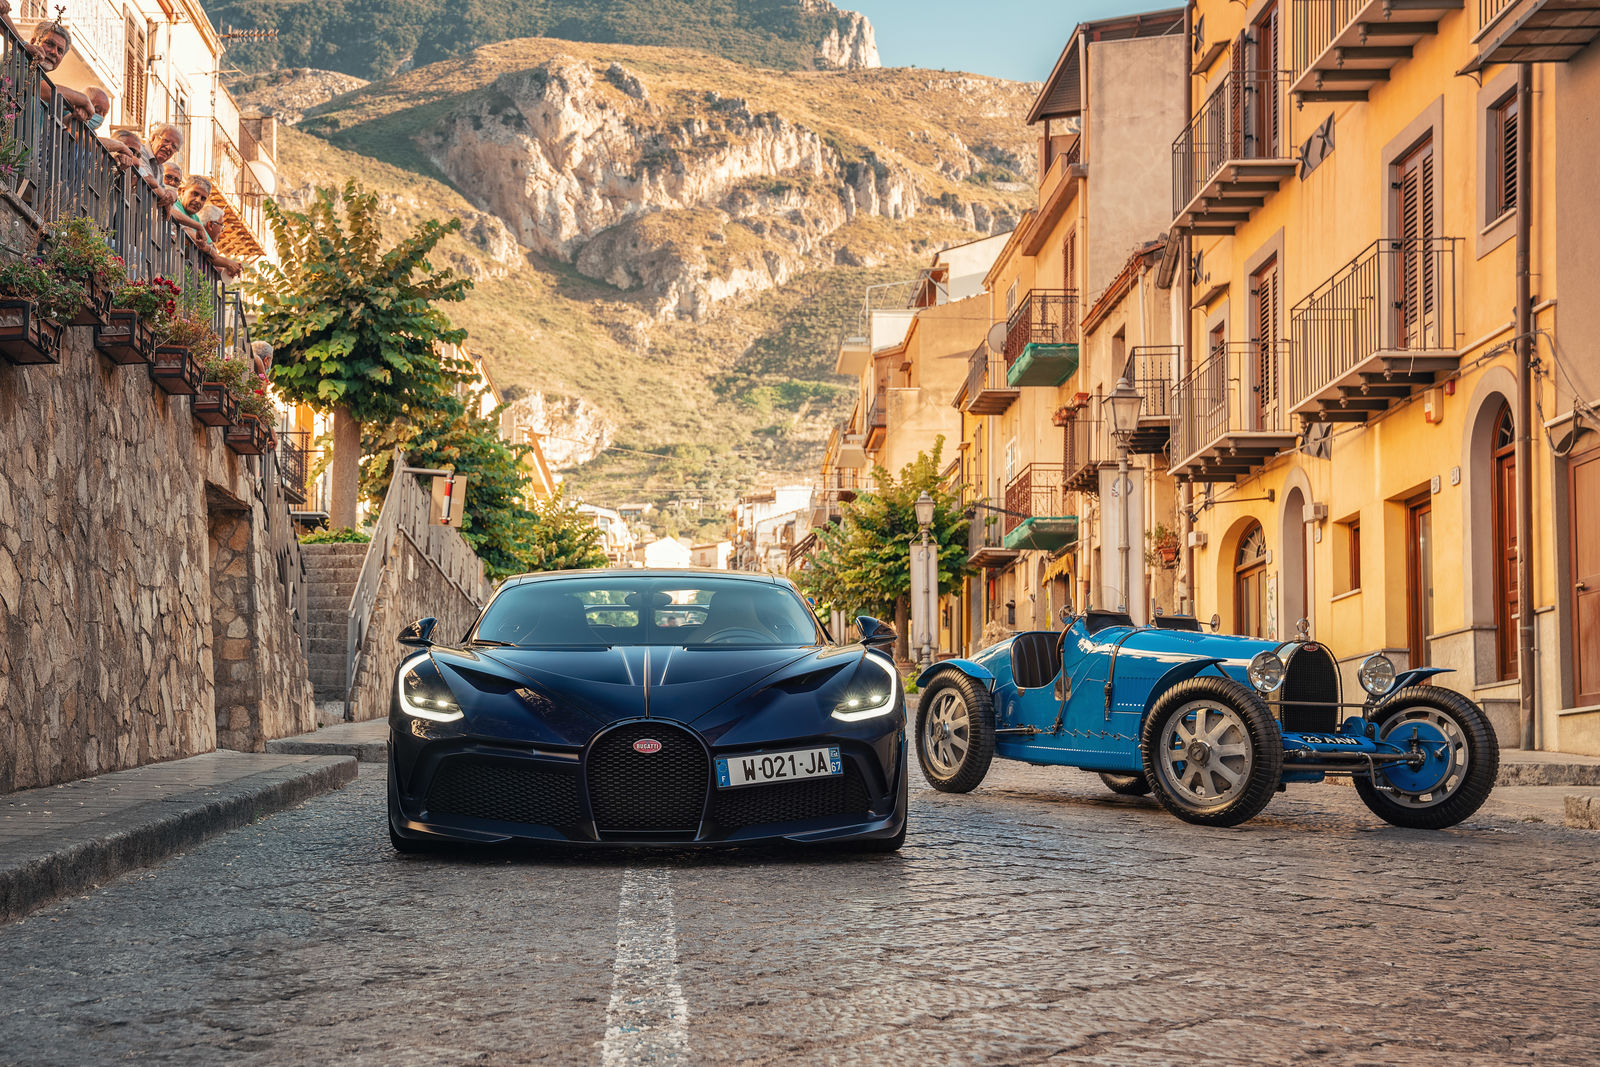 BUGATTI TARGA FLORIO – Following in Albert Divo's footsteps in the Bugatti Divo